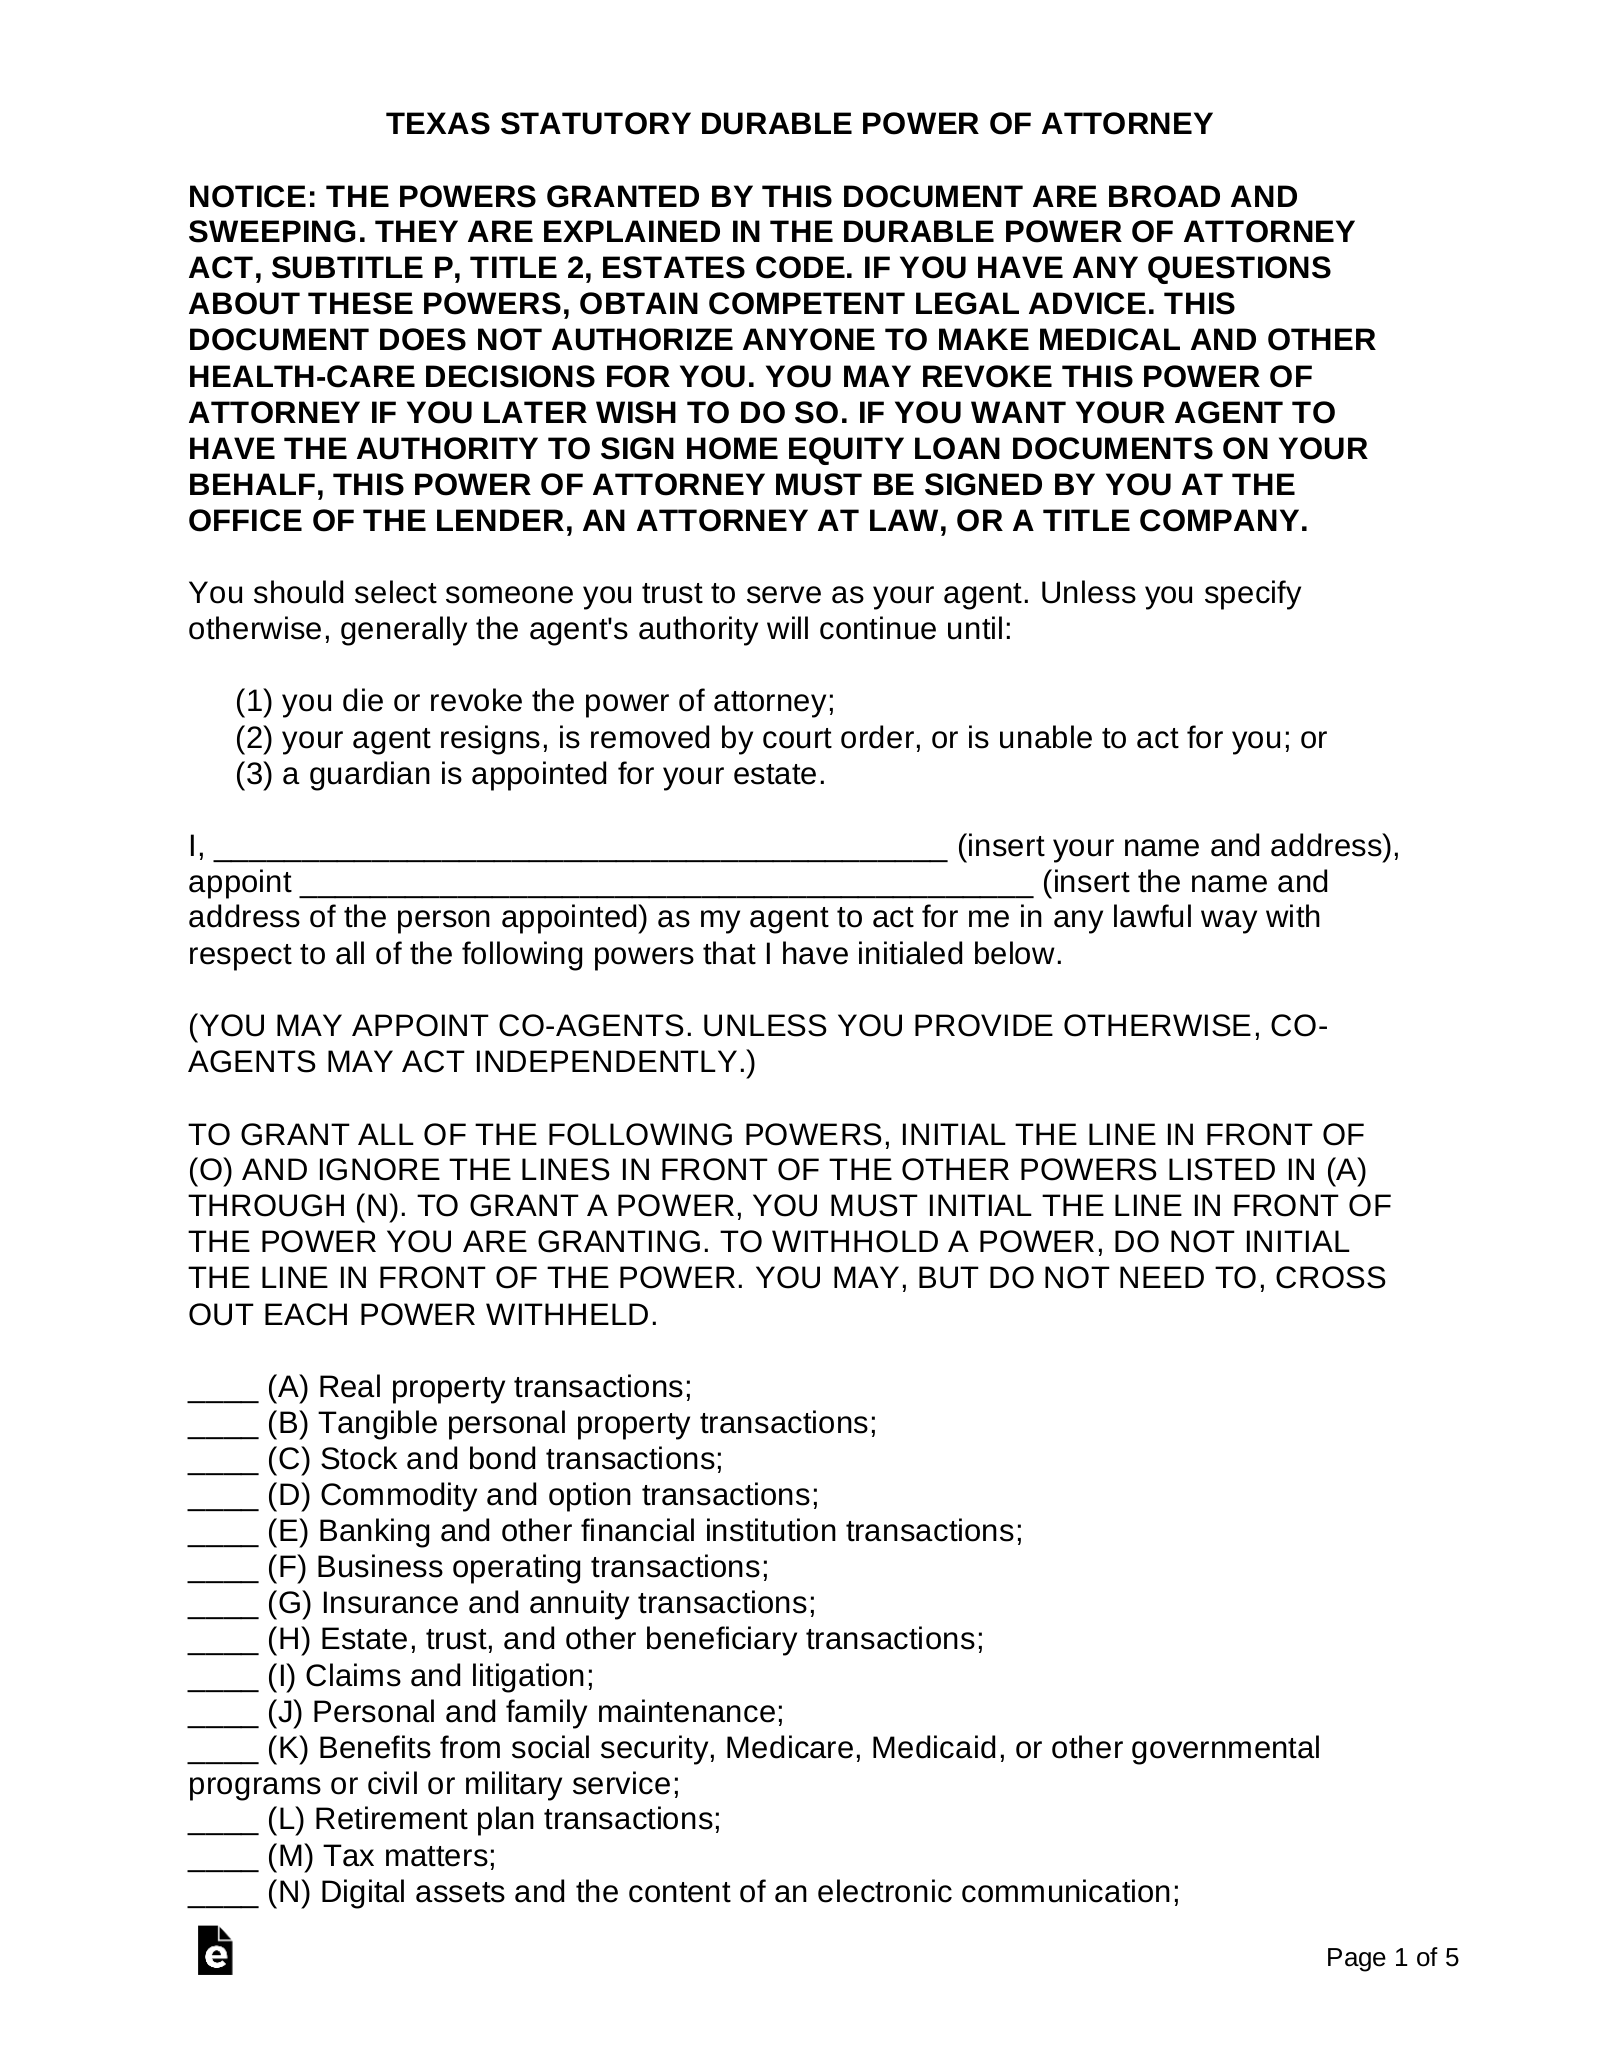 power of attorney form texas  Free Texas Power of Attorney Forms - Word | PDF | eForms ...